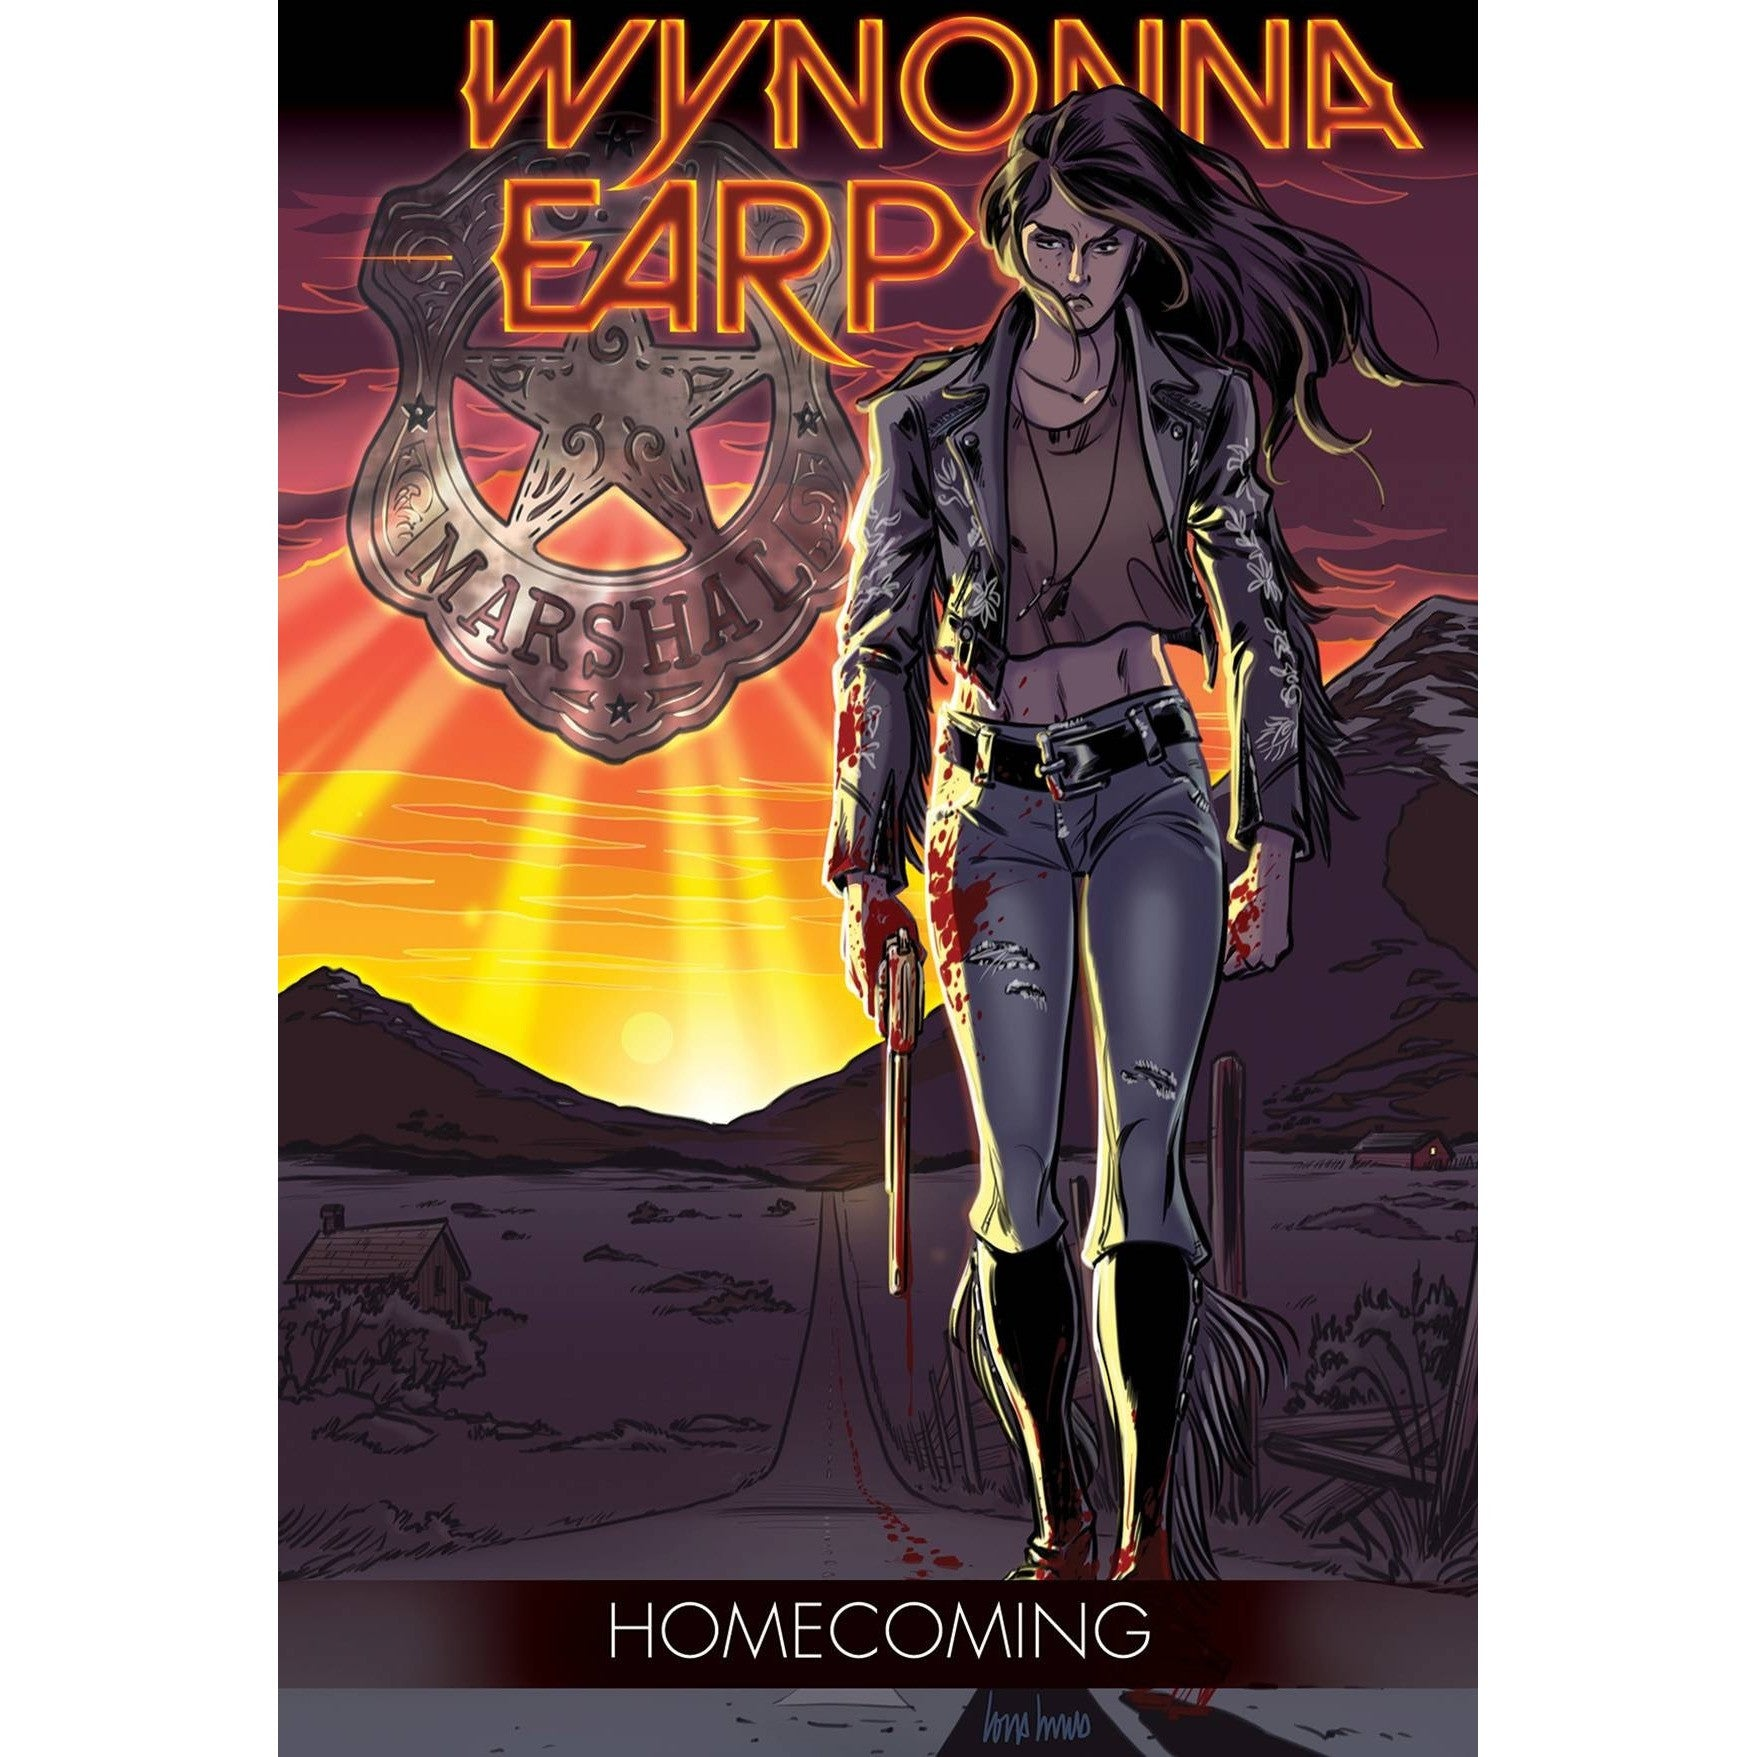 WYNONNA EARP TP VOL 01 HOMECOMING